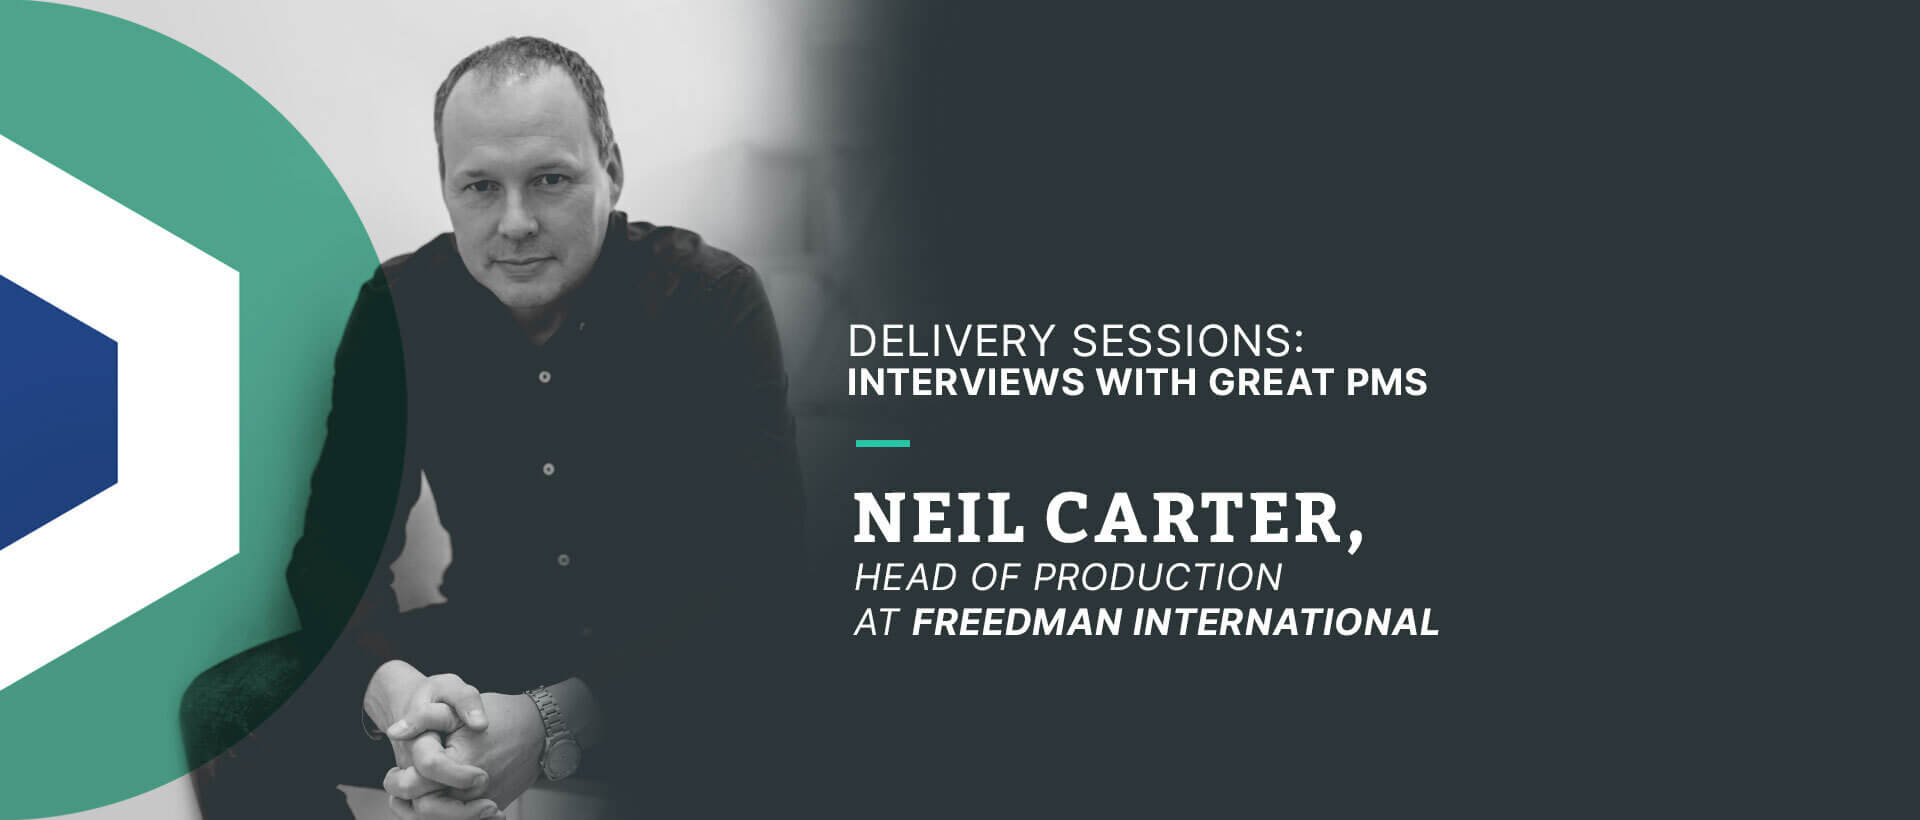 Delivery Session Interview with Neil Carter, Head of Production at Freedman International